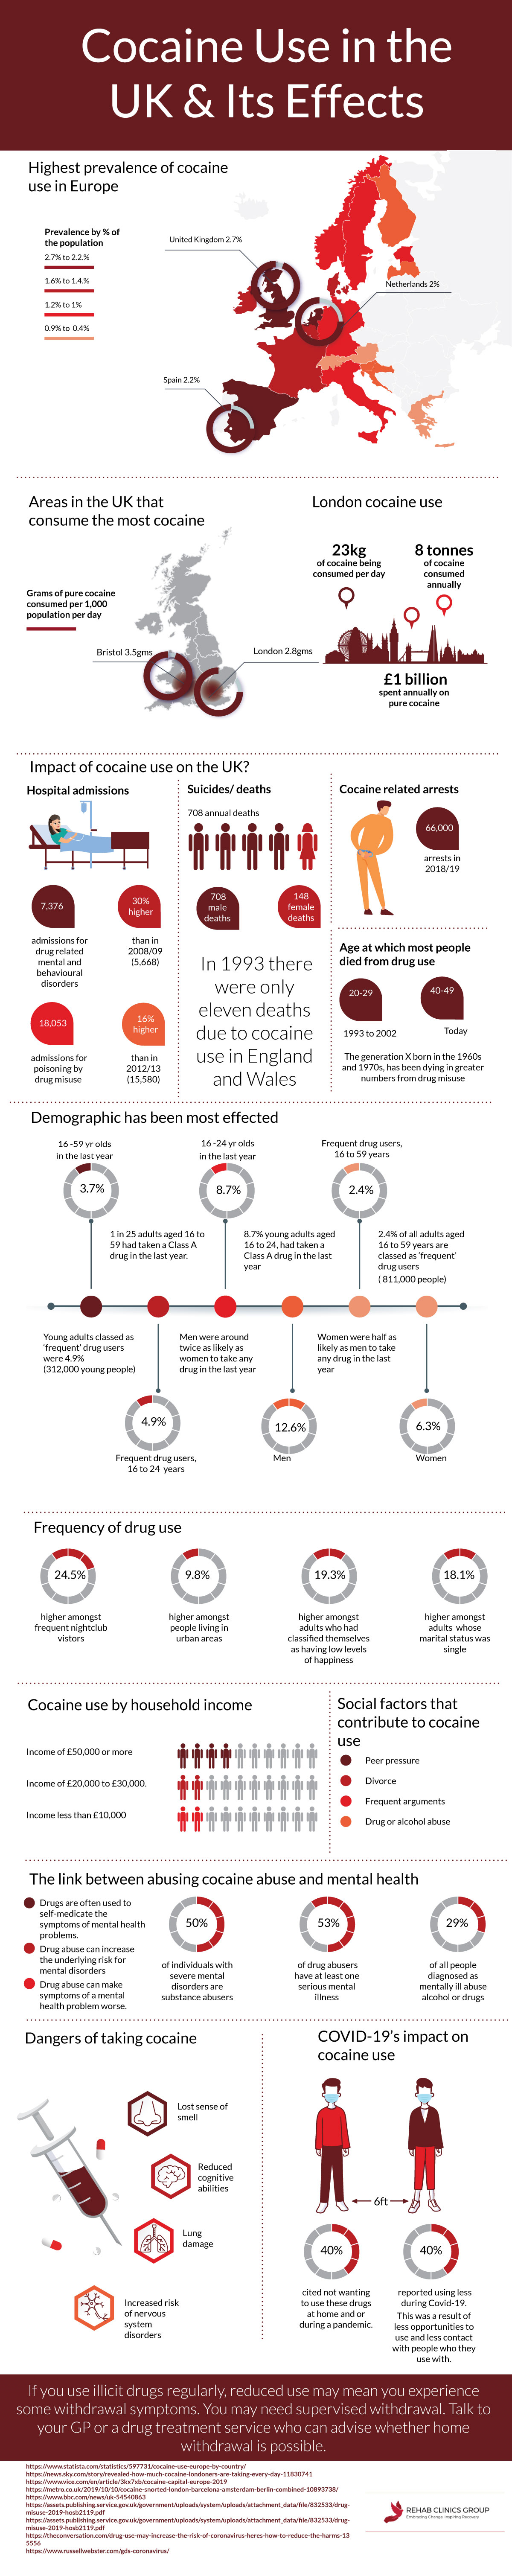 UKs-cocaine-use-and-its-effects